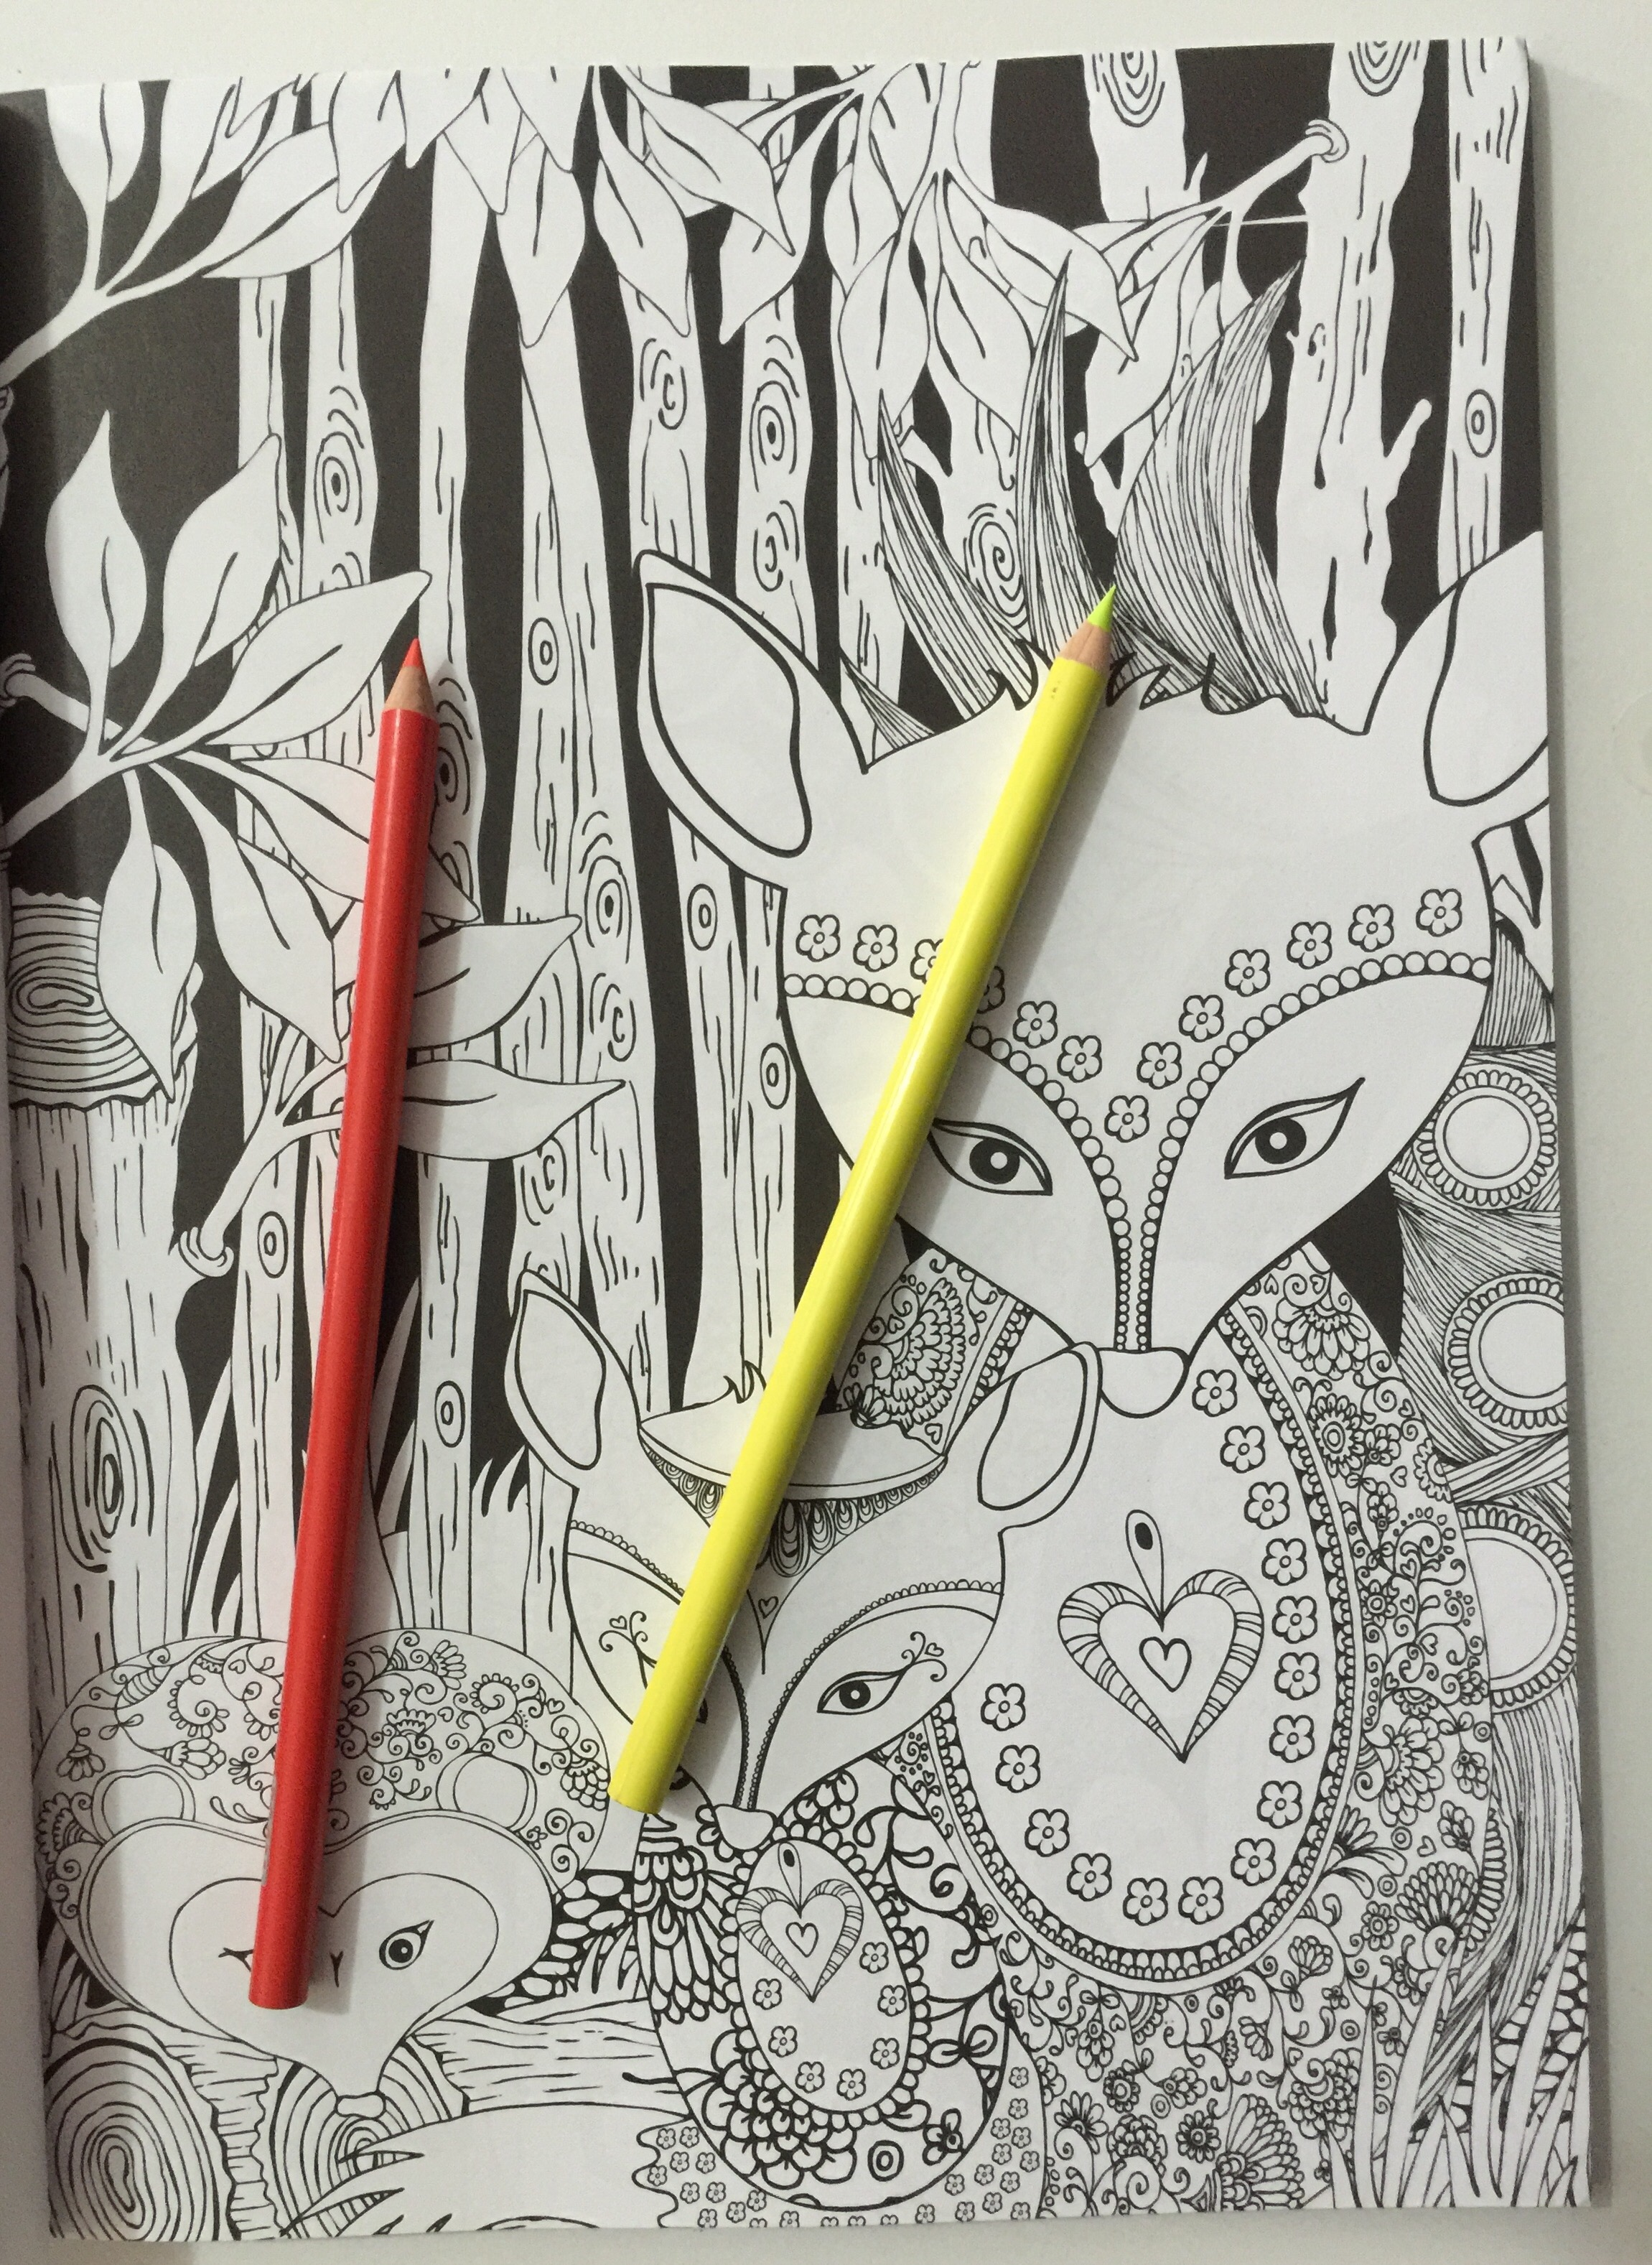 Colouring Coloring Adult Reviews Midnight Garden Creative Haven Books Review Pencils Stress Relief Mindfulness